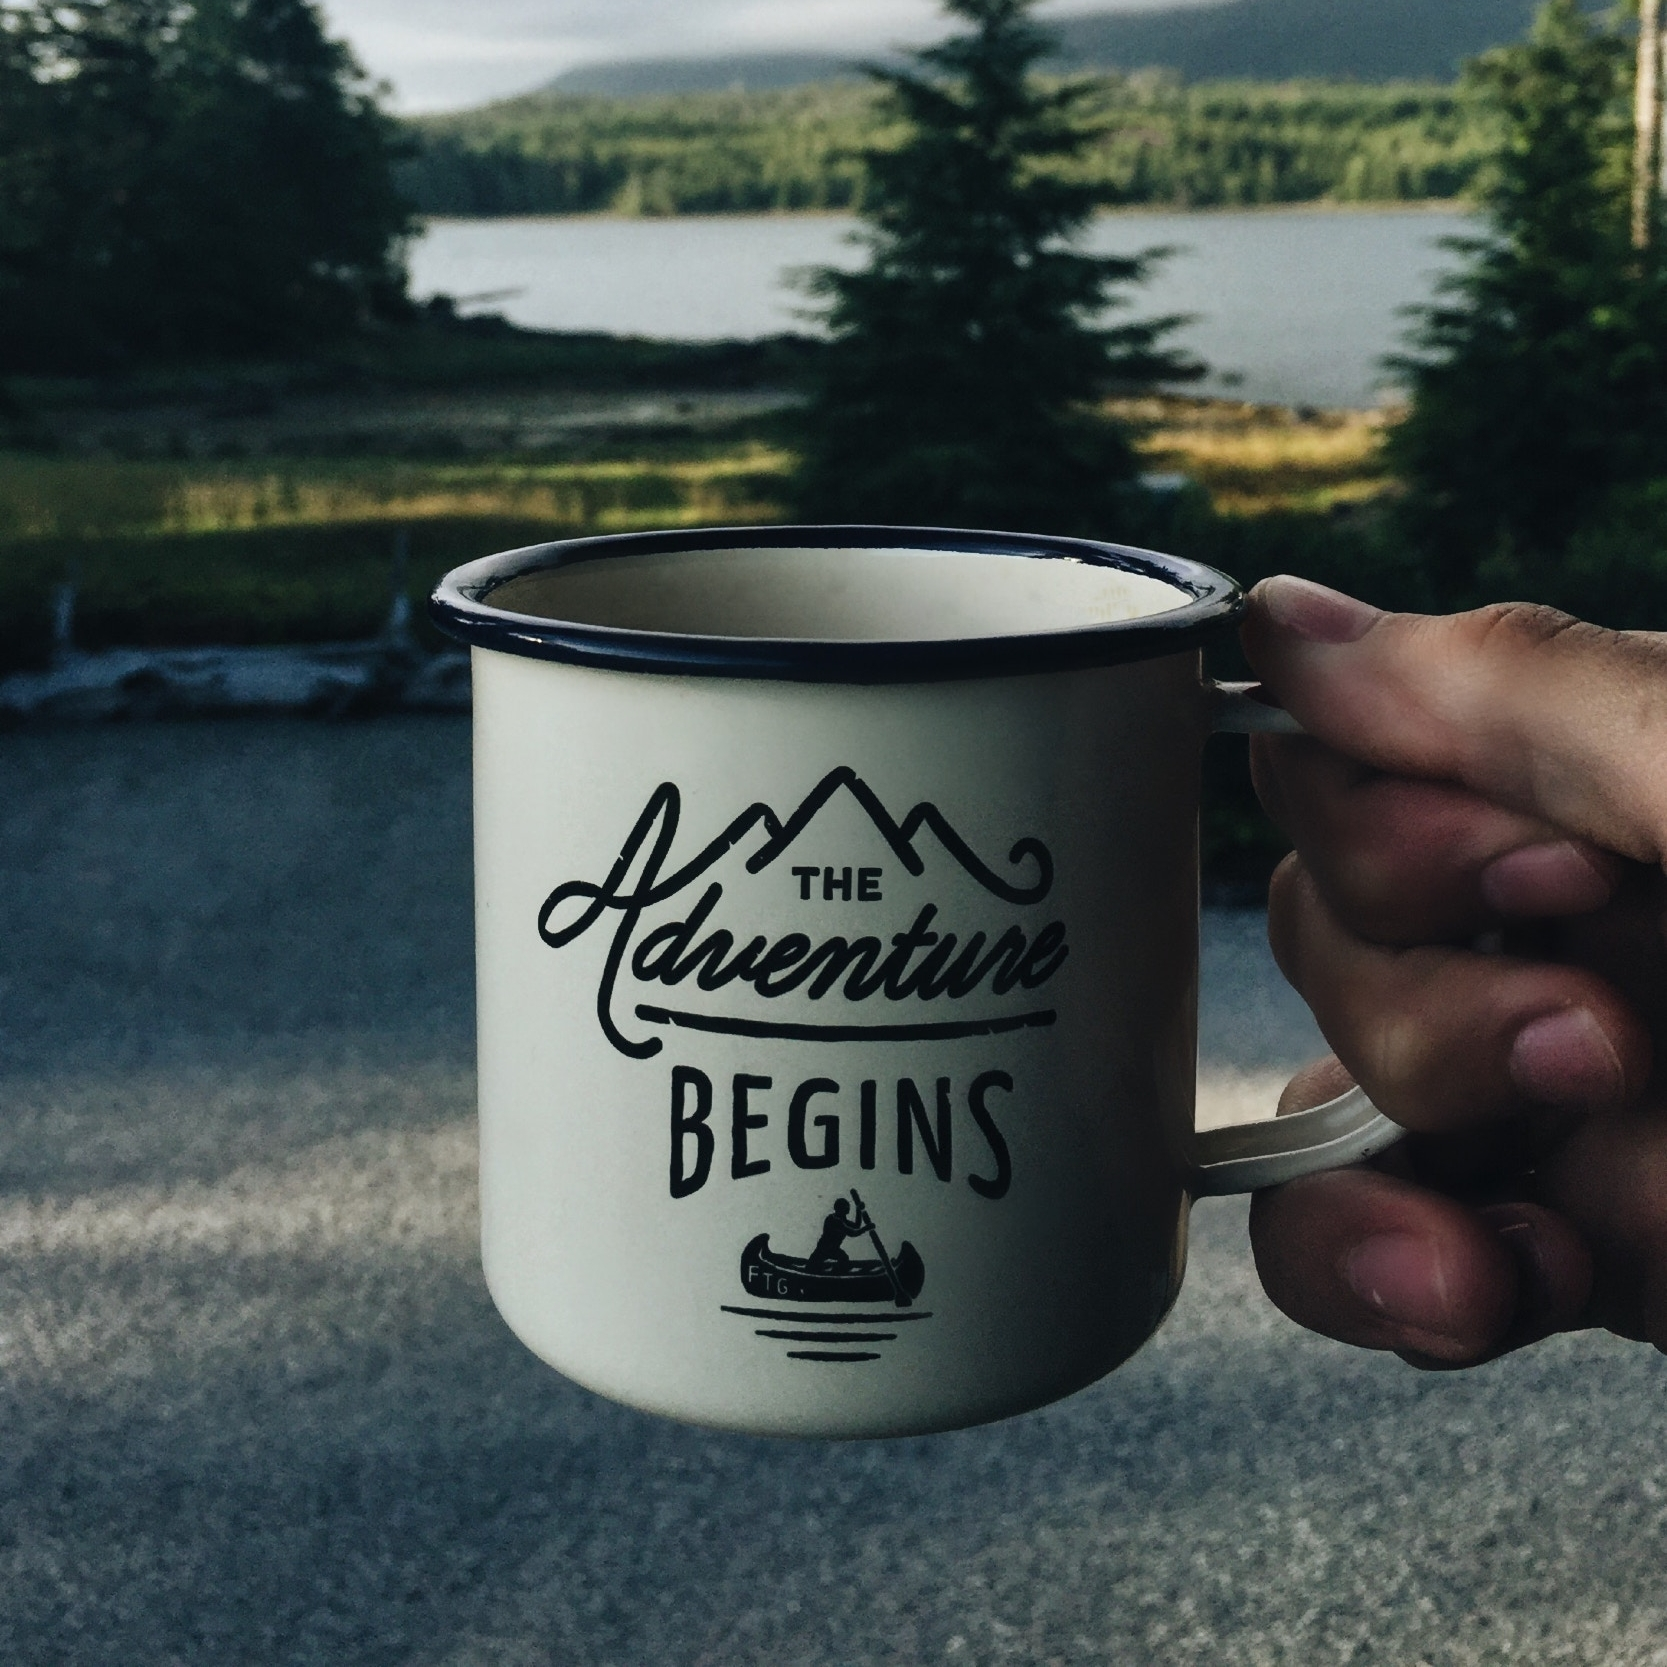 """When building any kind of a custom system, I'm reminded of waking-up early before a long trip and enjoying a cup of coffee. Just as the caption on this coffee cup set against the backdrop of trees and a lake suggests, """"The adventure begins,"""" when you commission a custom LMS so make sure to fuel-up on caffeine!  Photo courtesy of  Matthew Sleeper on  Unsplash"""